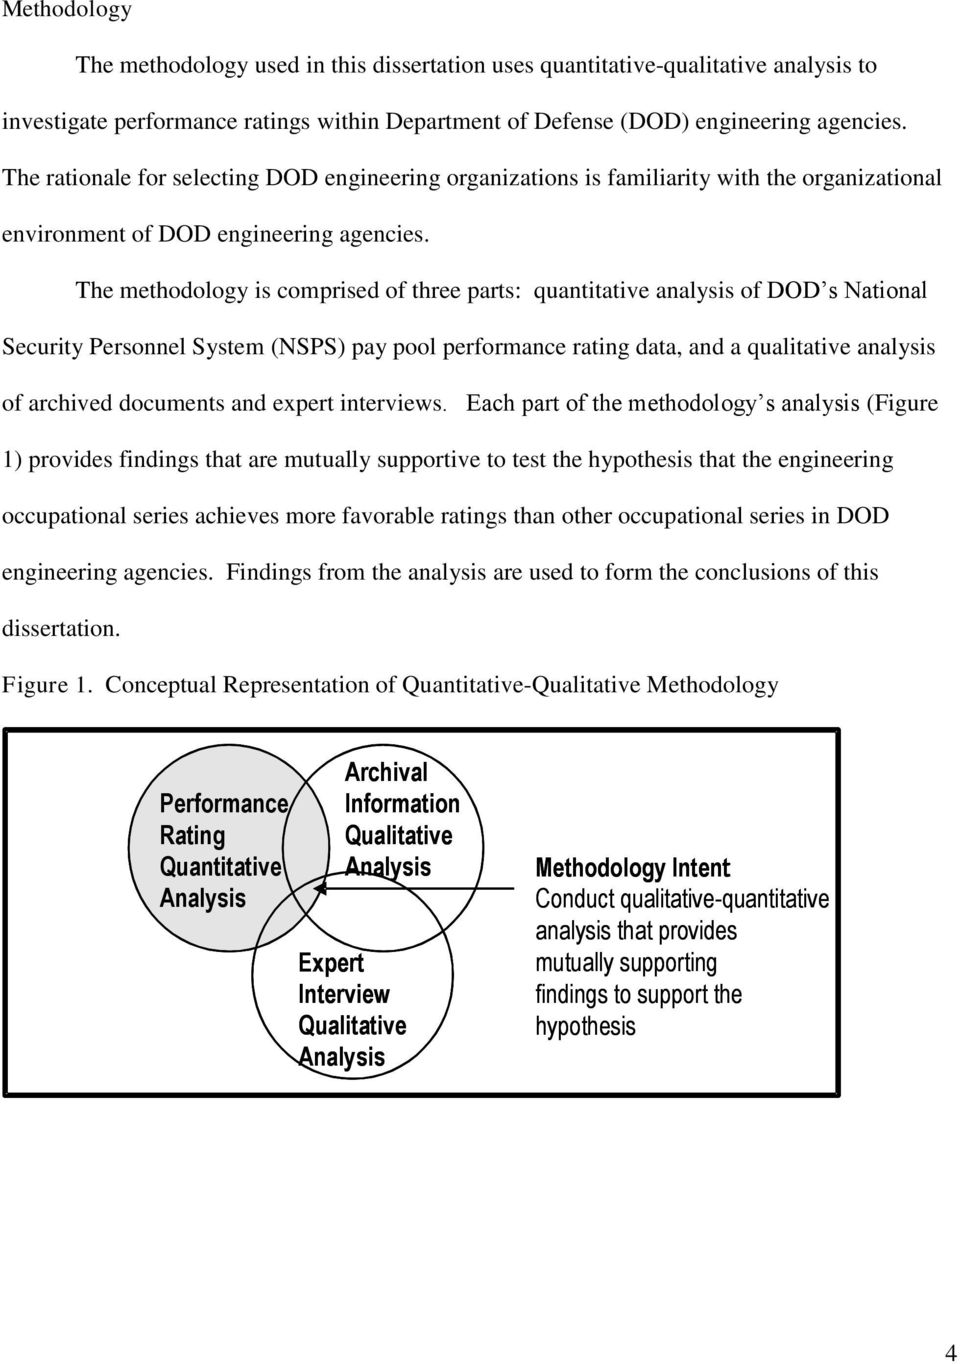 The methodology is comprised of three parts: quantitative analysis of DOD s National Security Personnel System (NSPS) pay pool performance rating data, and a qualitative analysis of archived